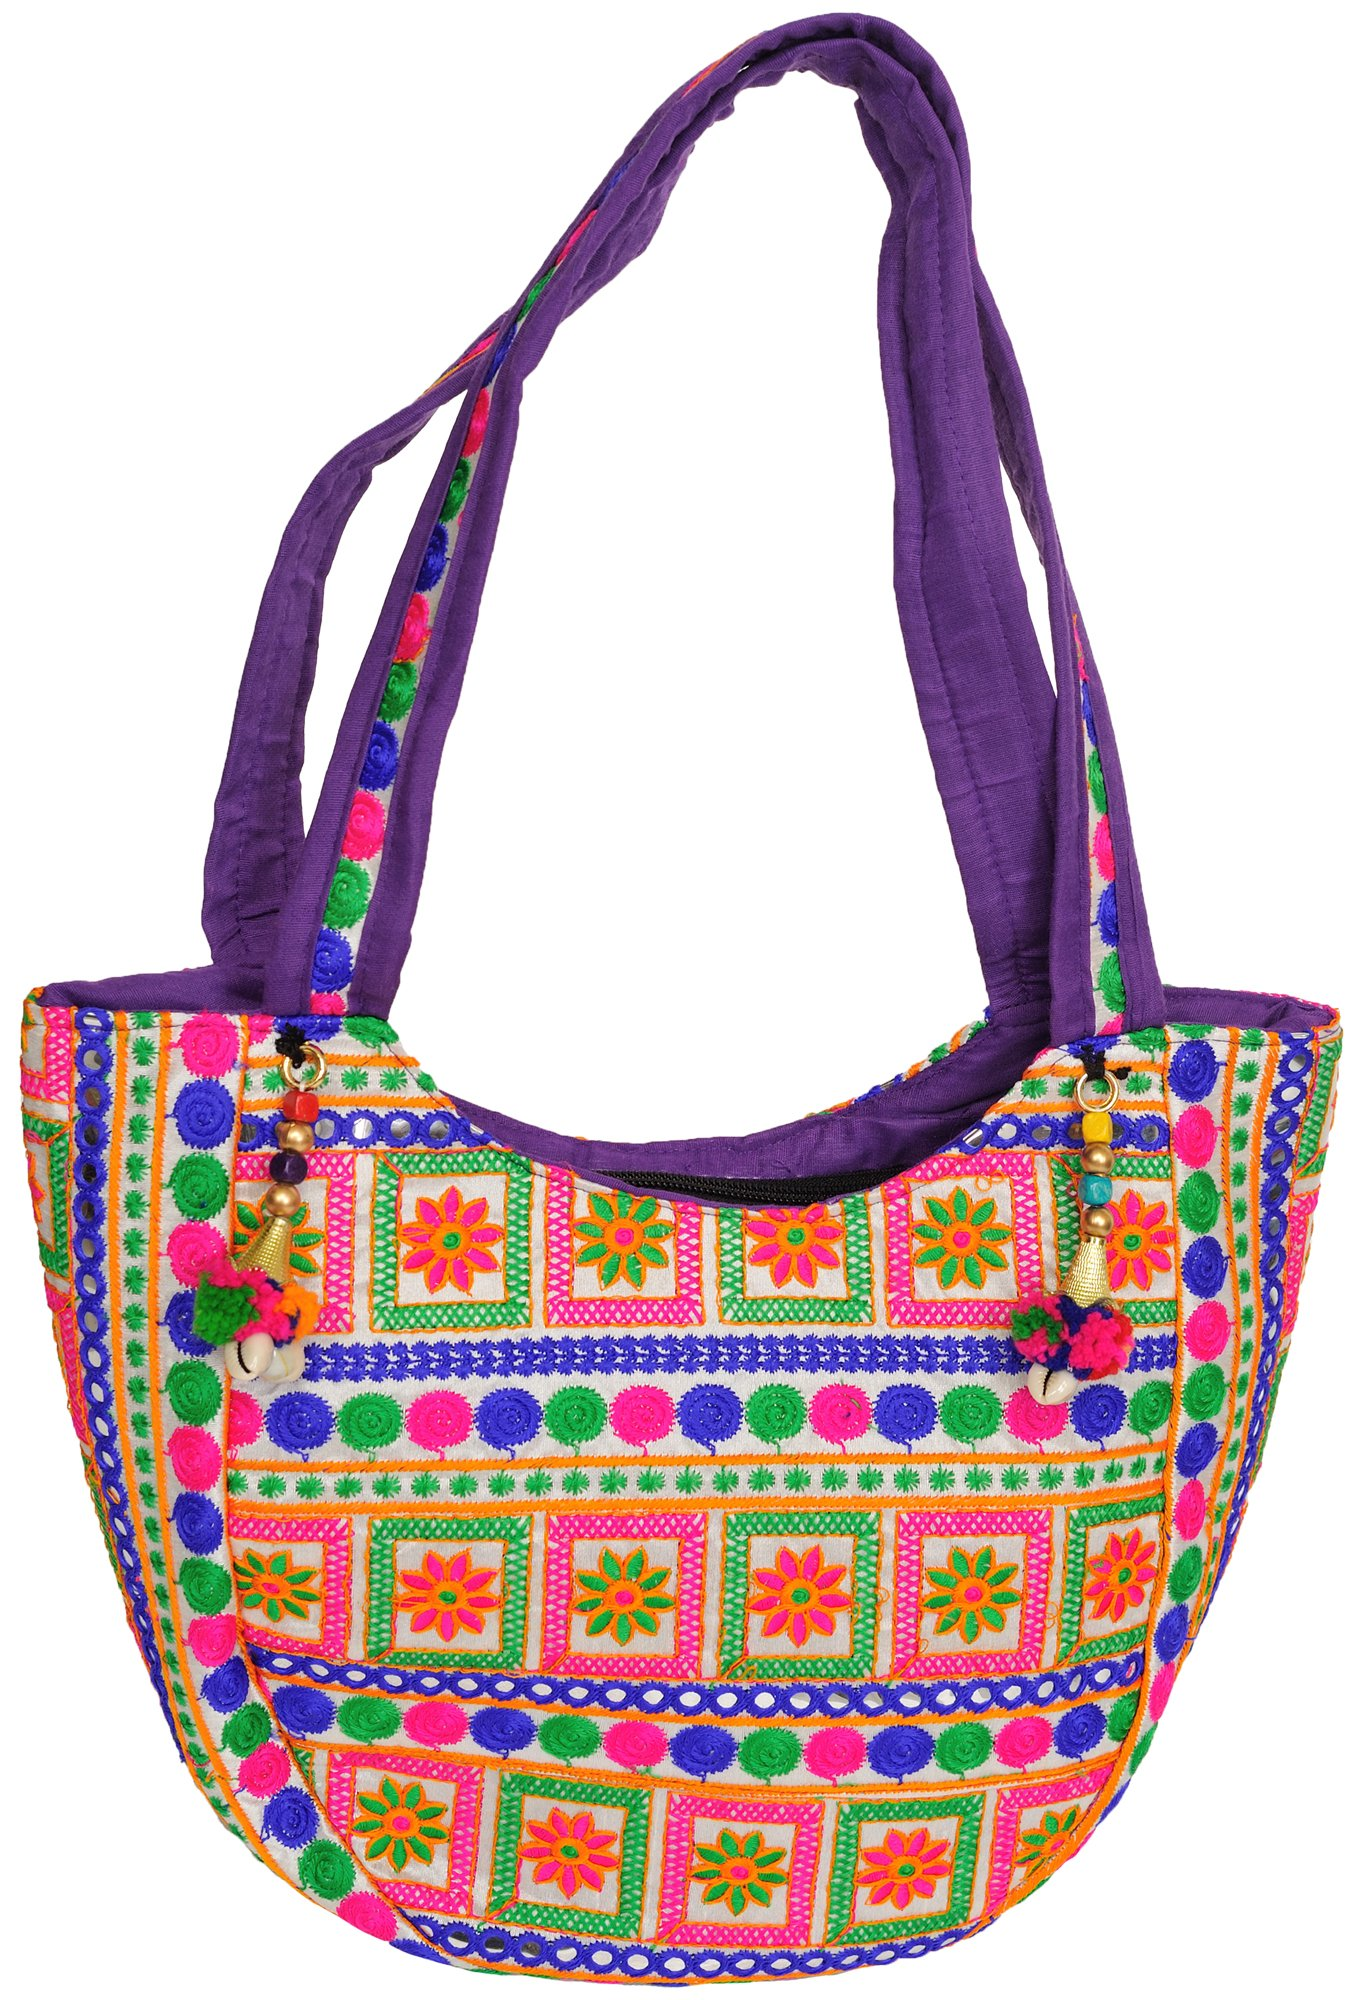 Star white floral embroidered shoulder bag from kutch with